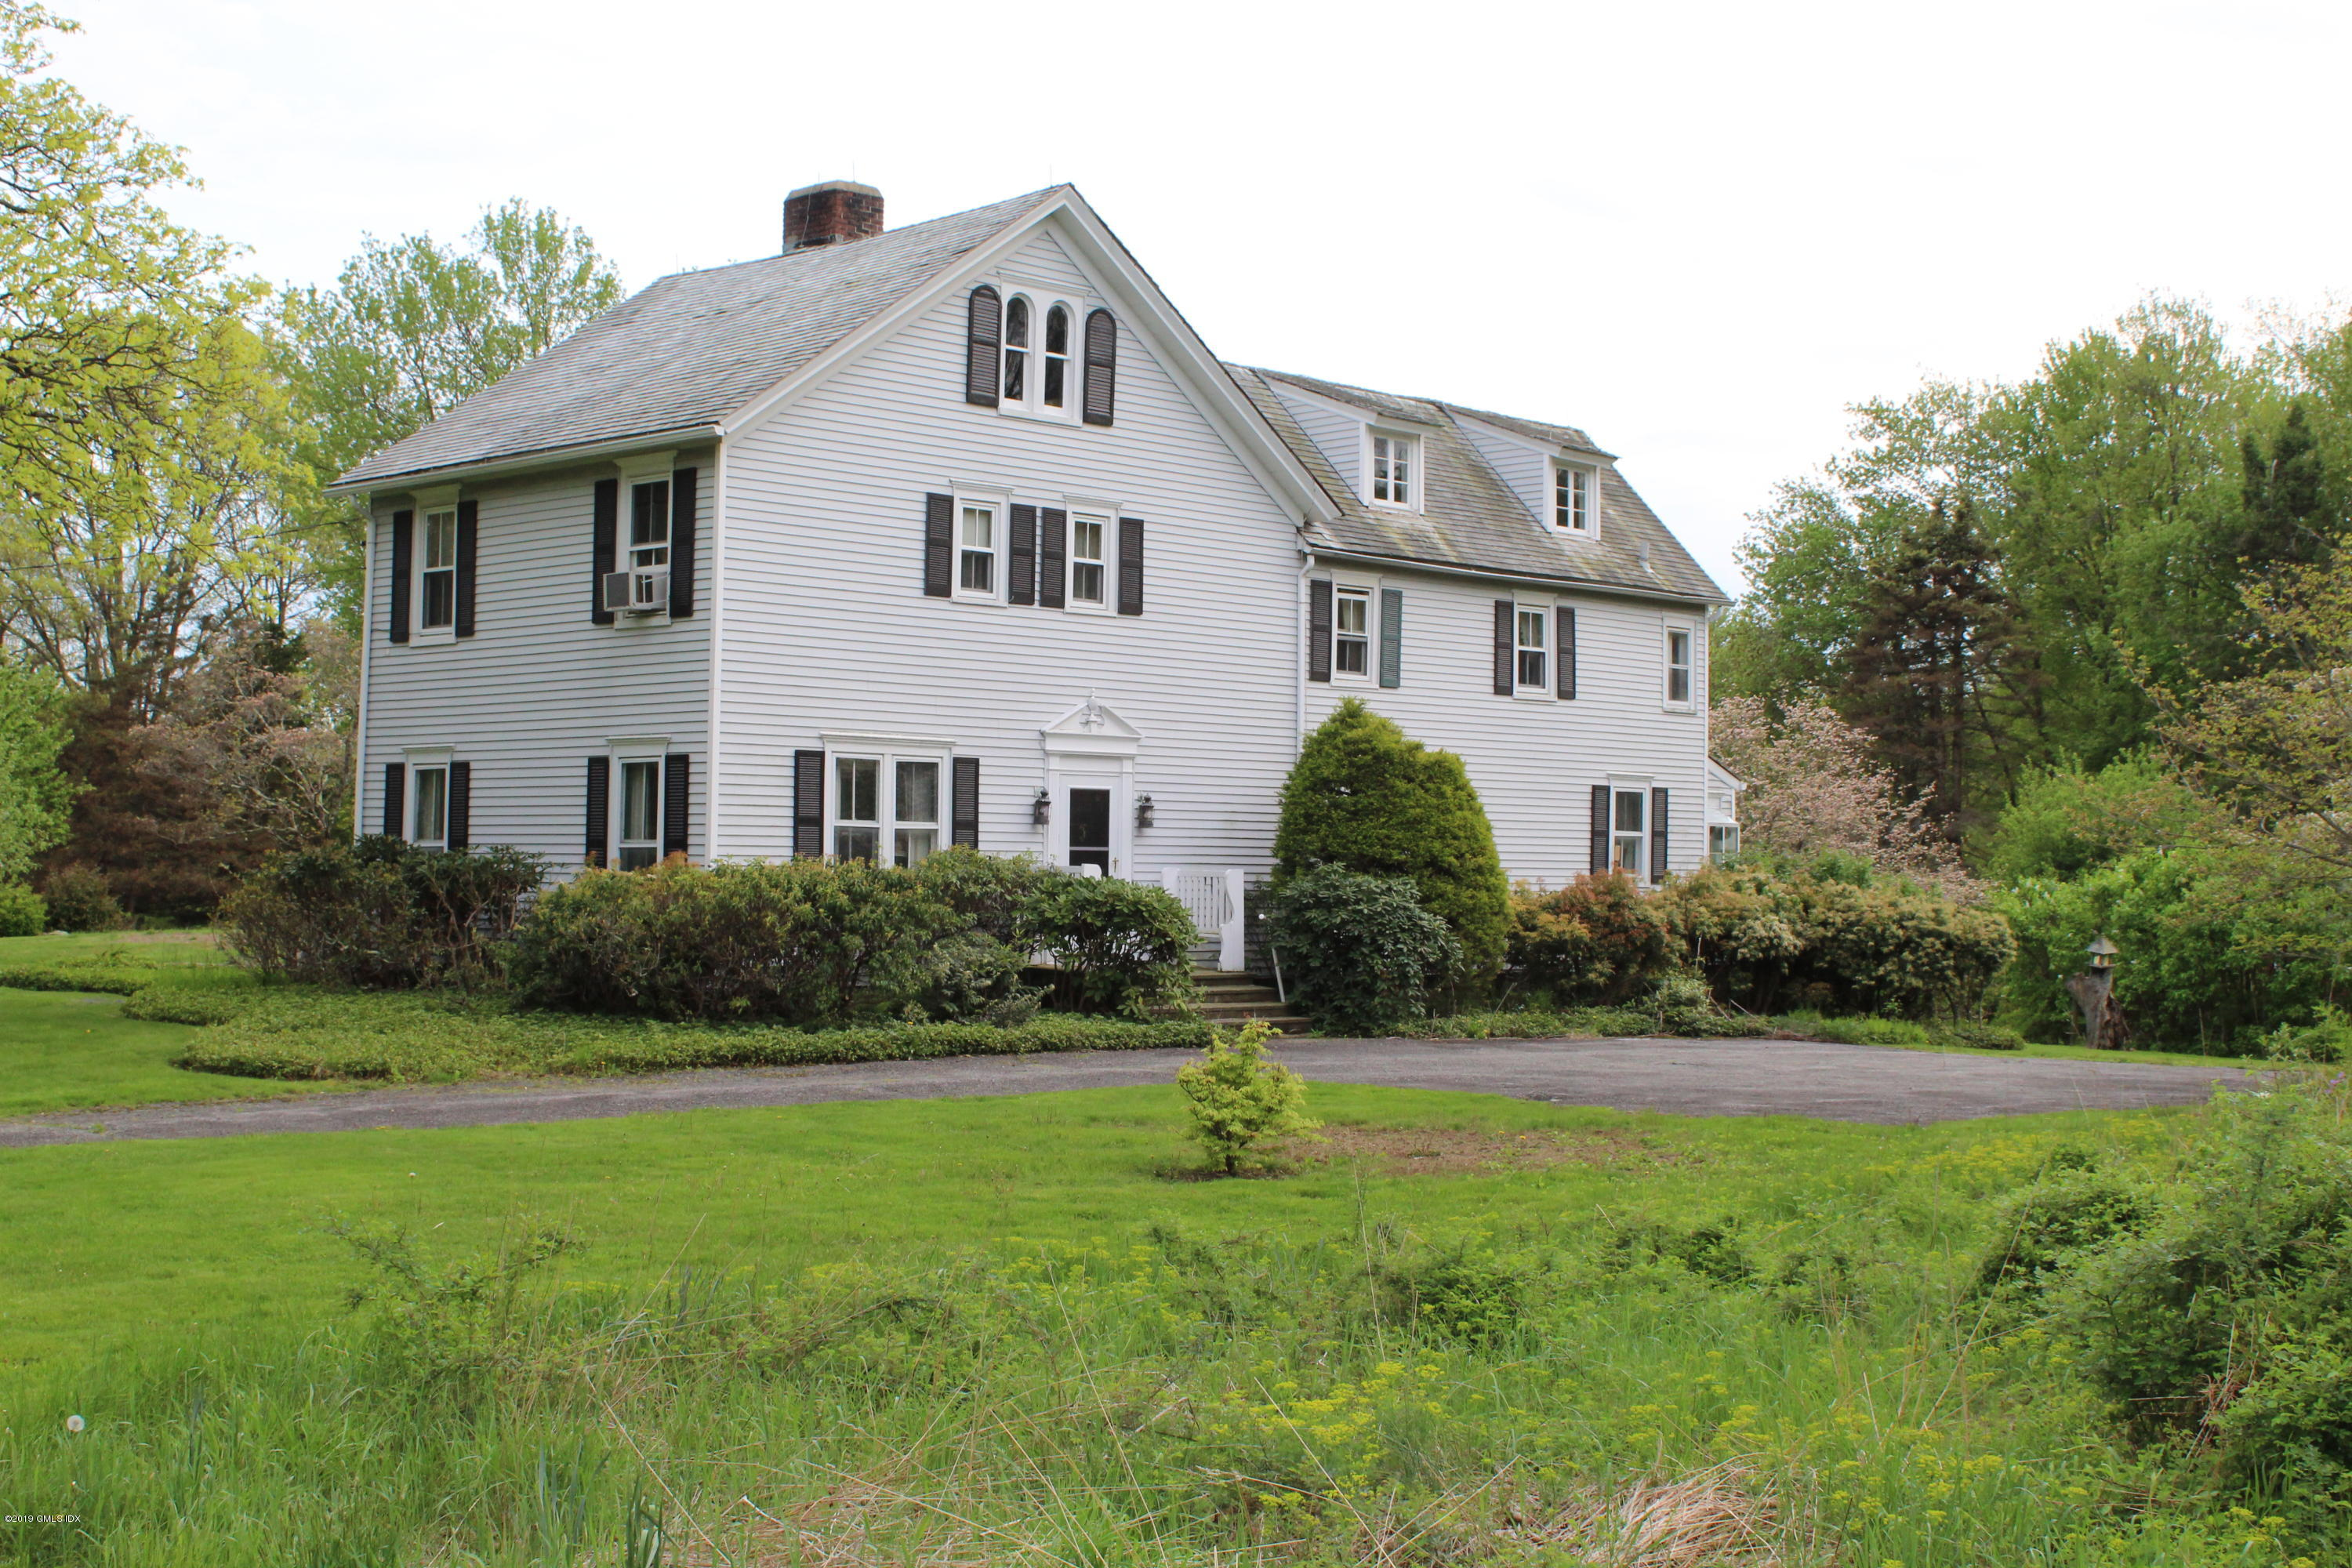 22 Sumner Road,Greenwich,Connecticut 06831,4 Bedrooms Bedrooms,2 BathroomsBathrooms,Single family,Sumner,106557